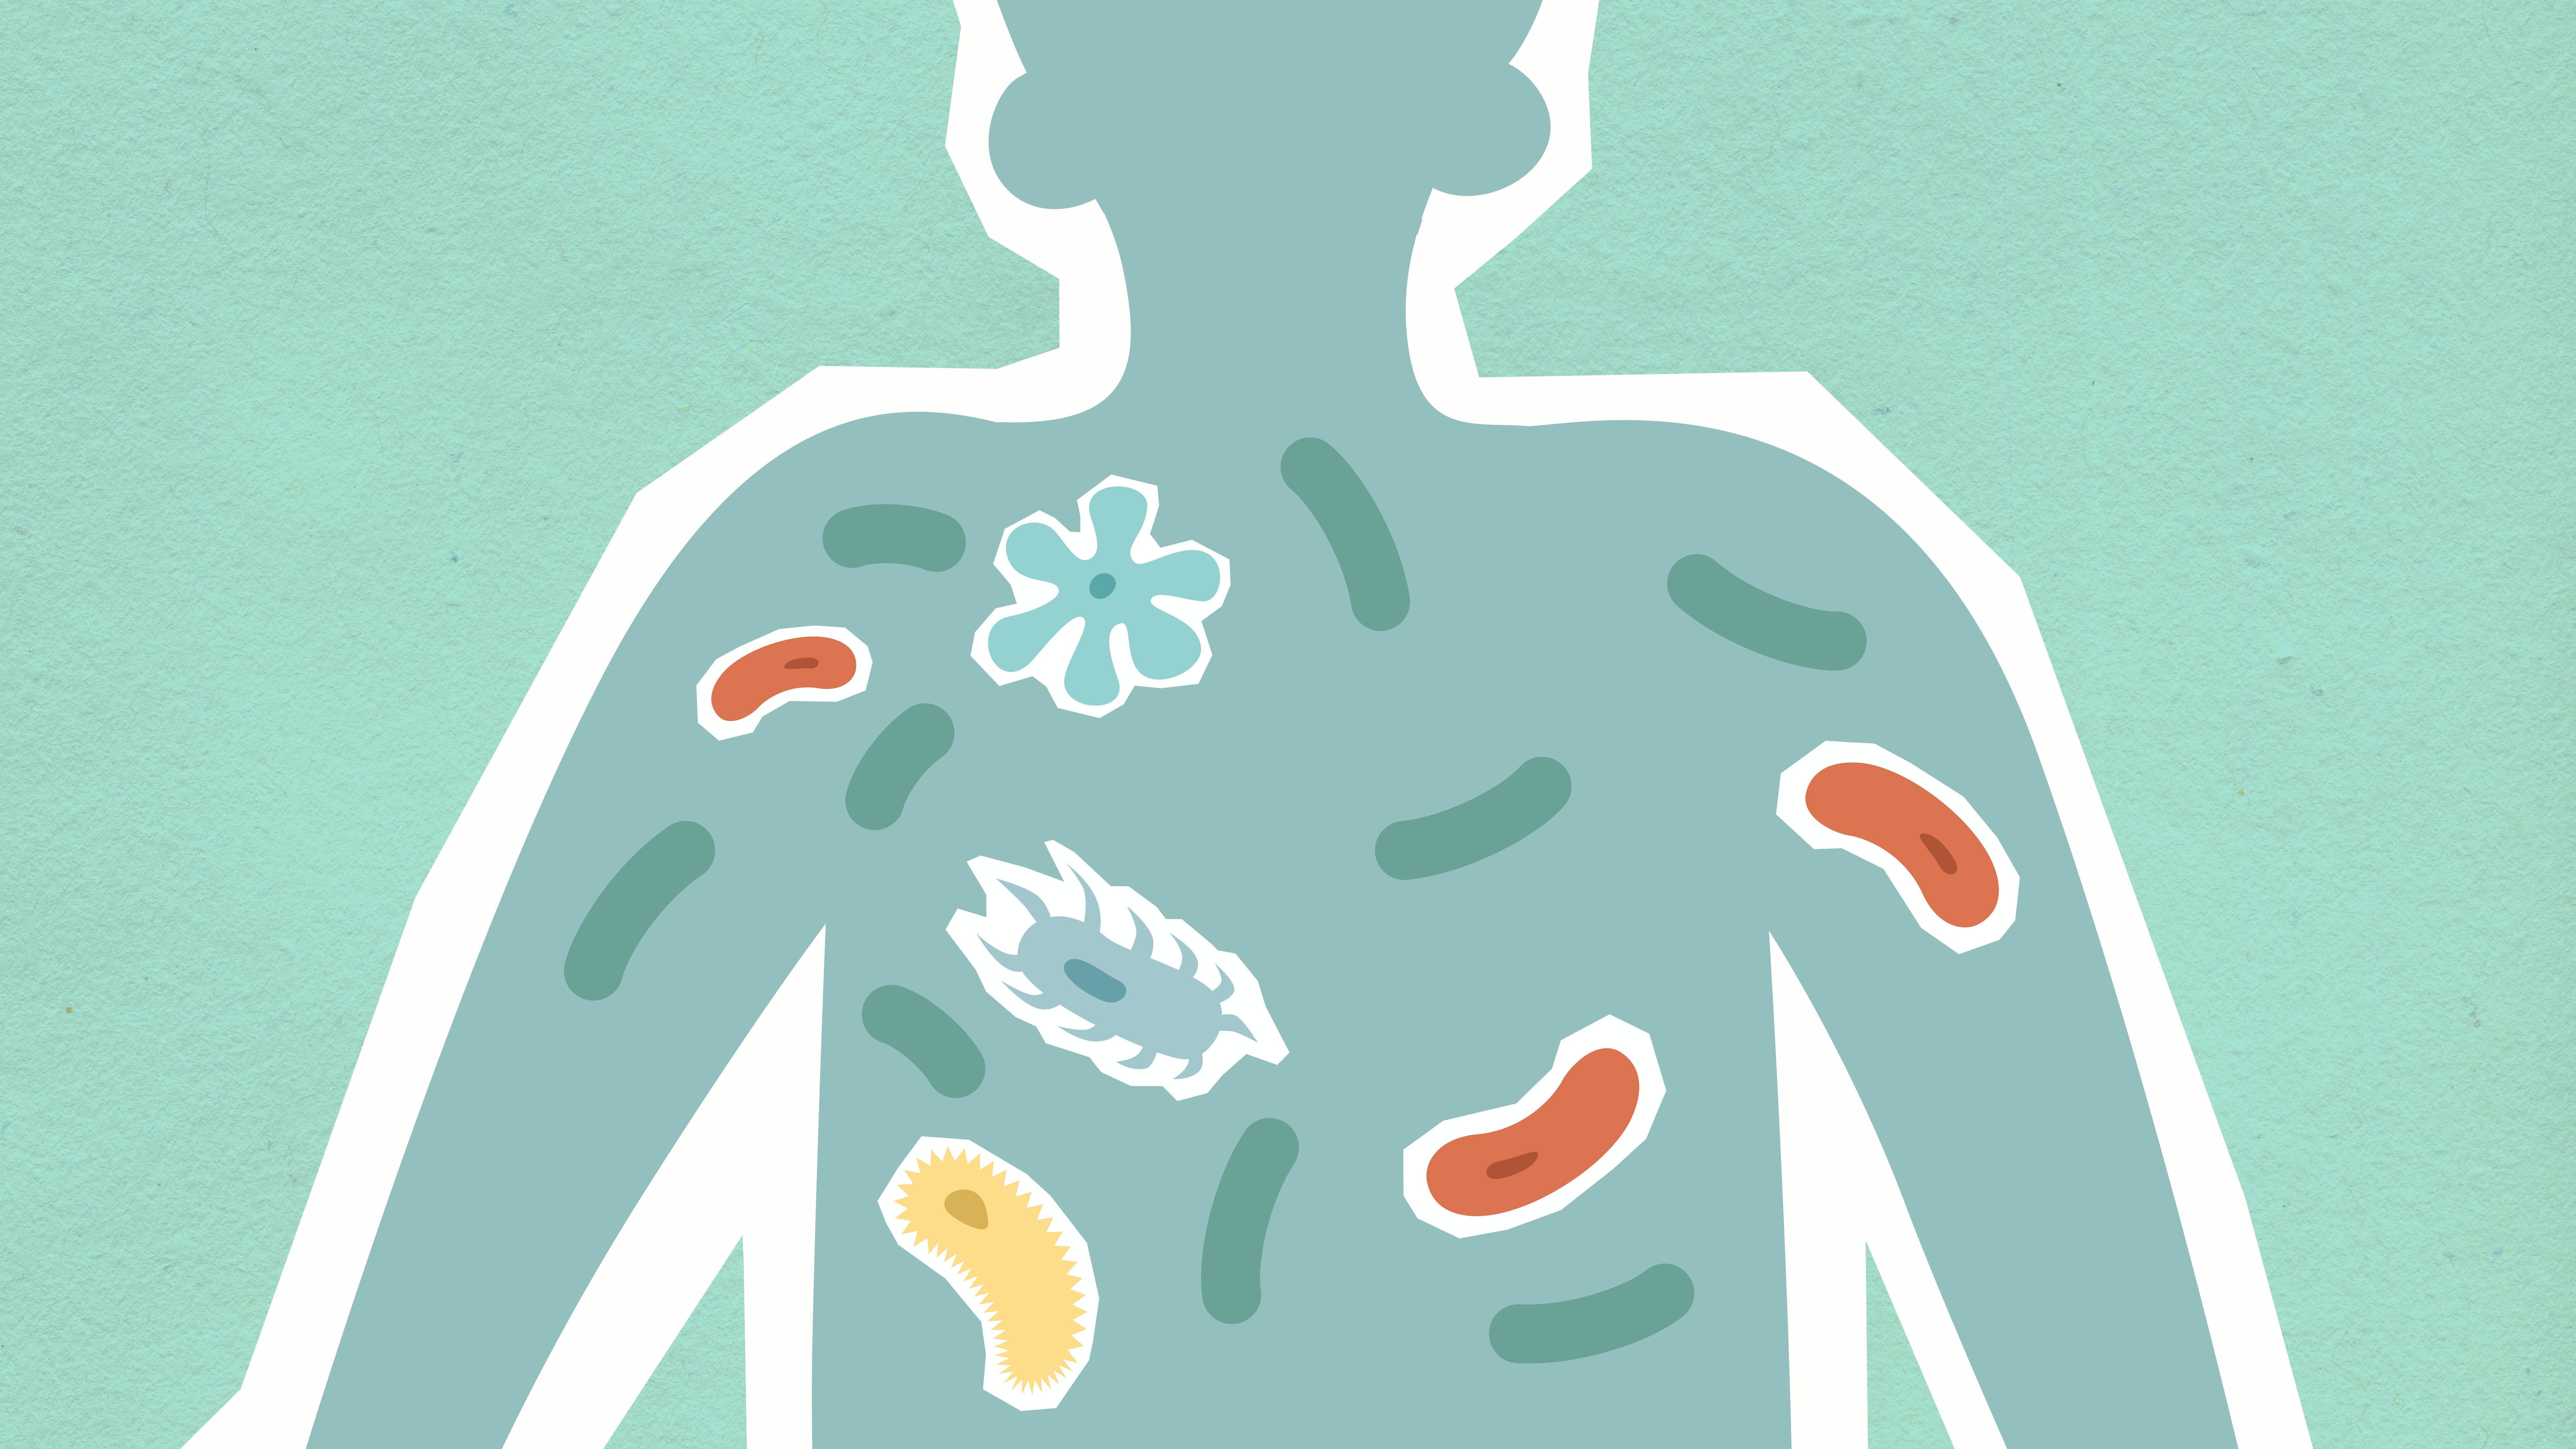 Different bacteria in the body illustration